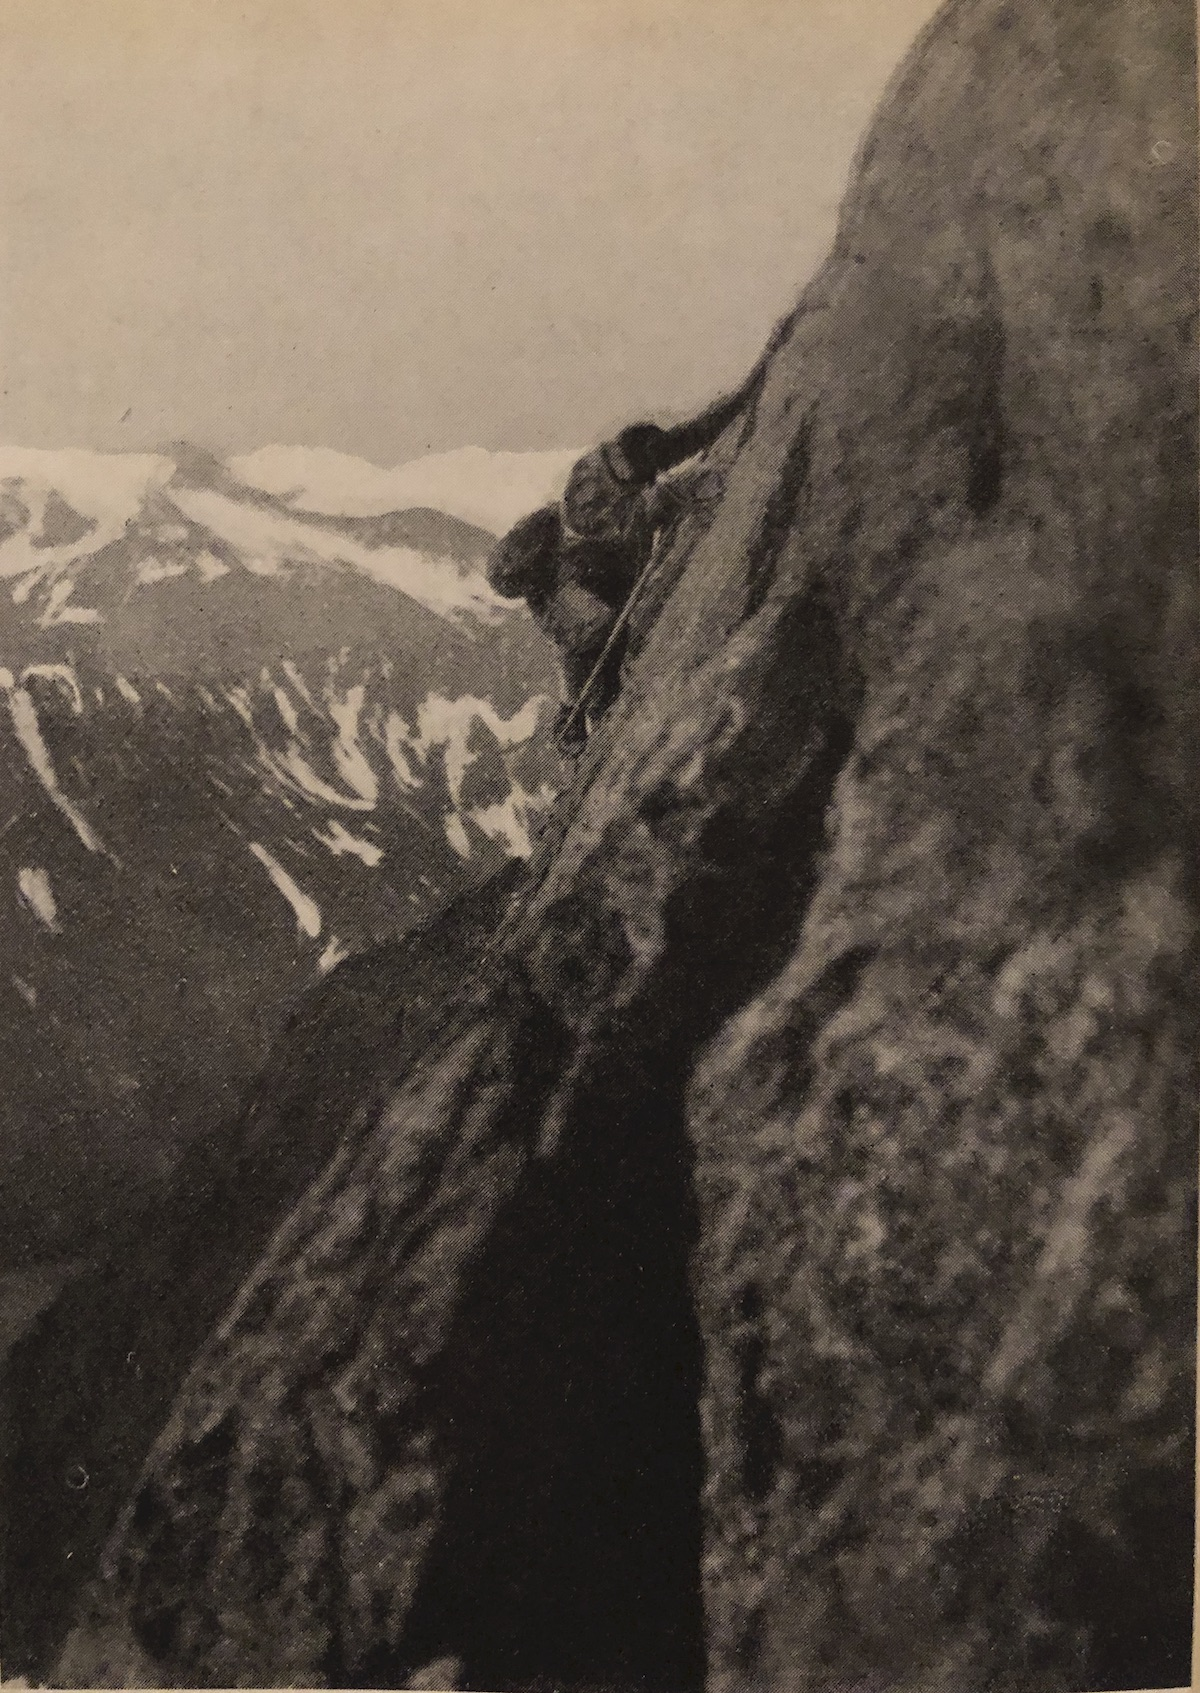 Ugo di Vallepiana on the first ascent, with Paul Preuss, of Pic Gamba on the Peuterey Ridge in 1913. [Photo] Paul Preuss / Courtesy David Smart